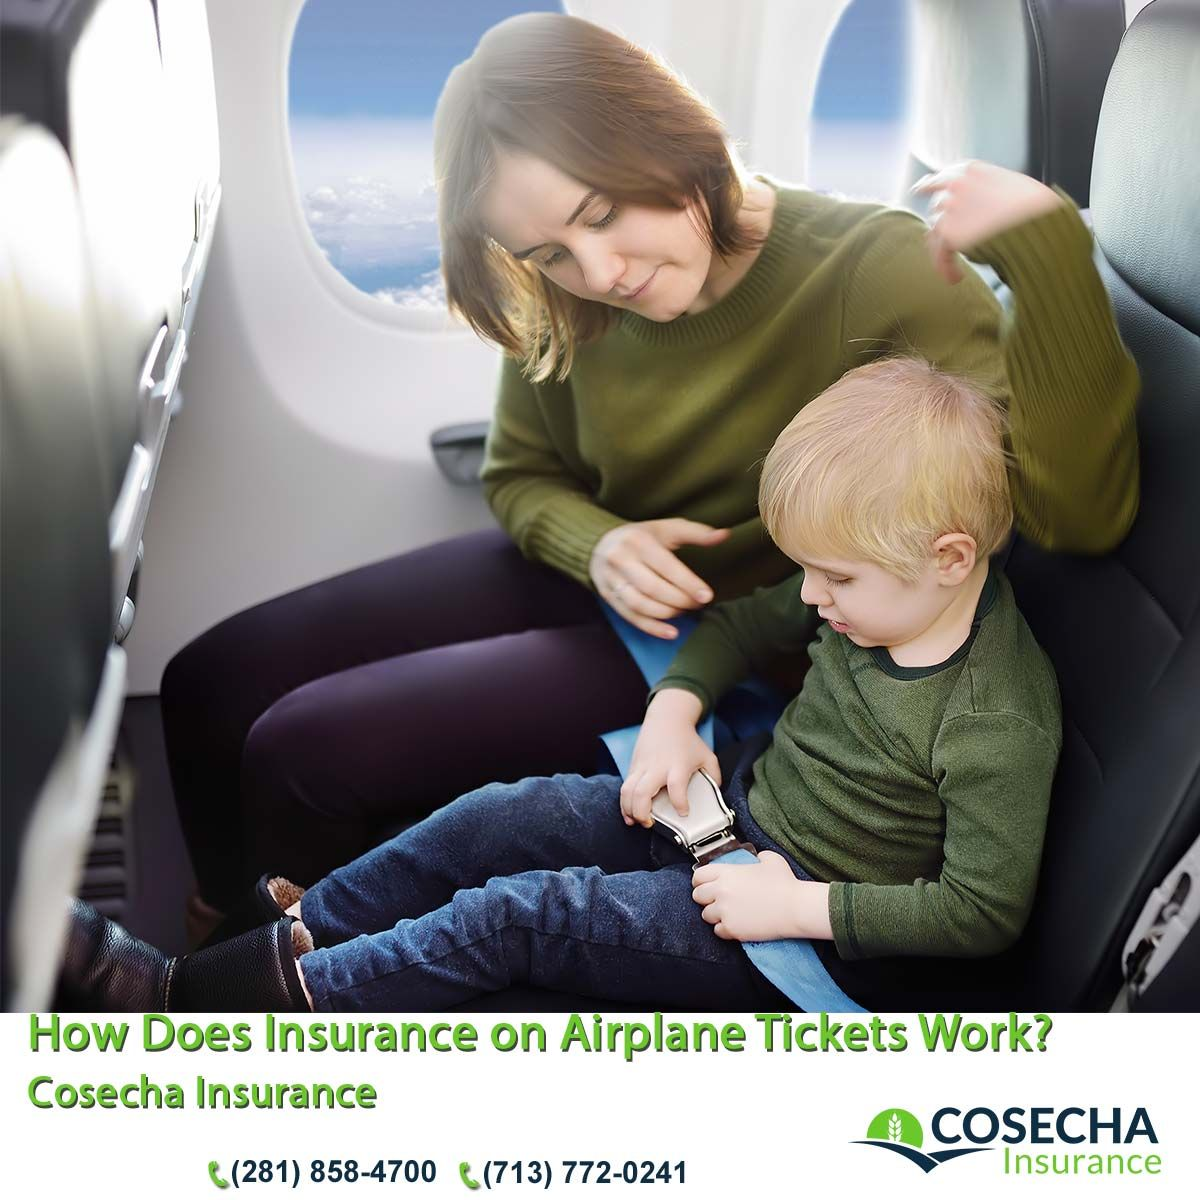 How Does Insurance on Airplane Tickets Work? Cosecha